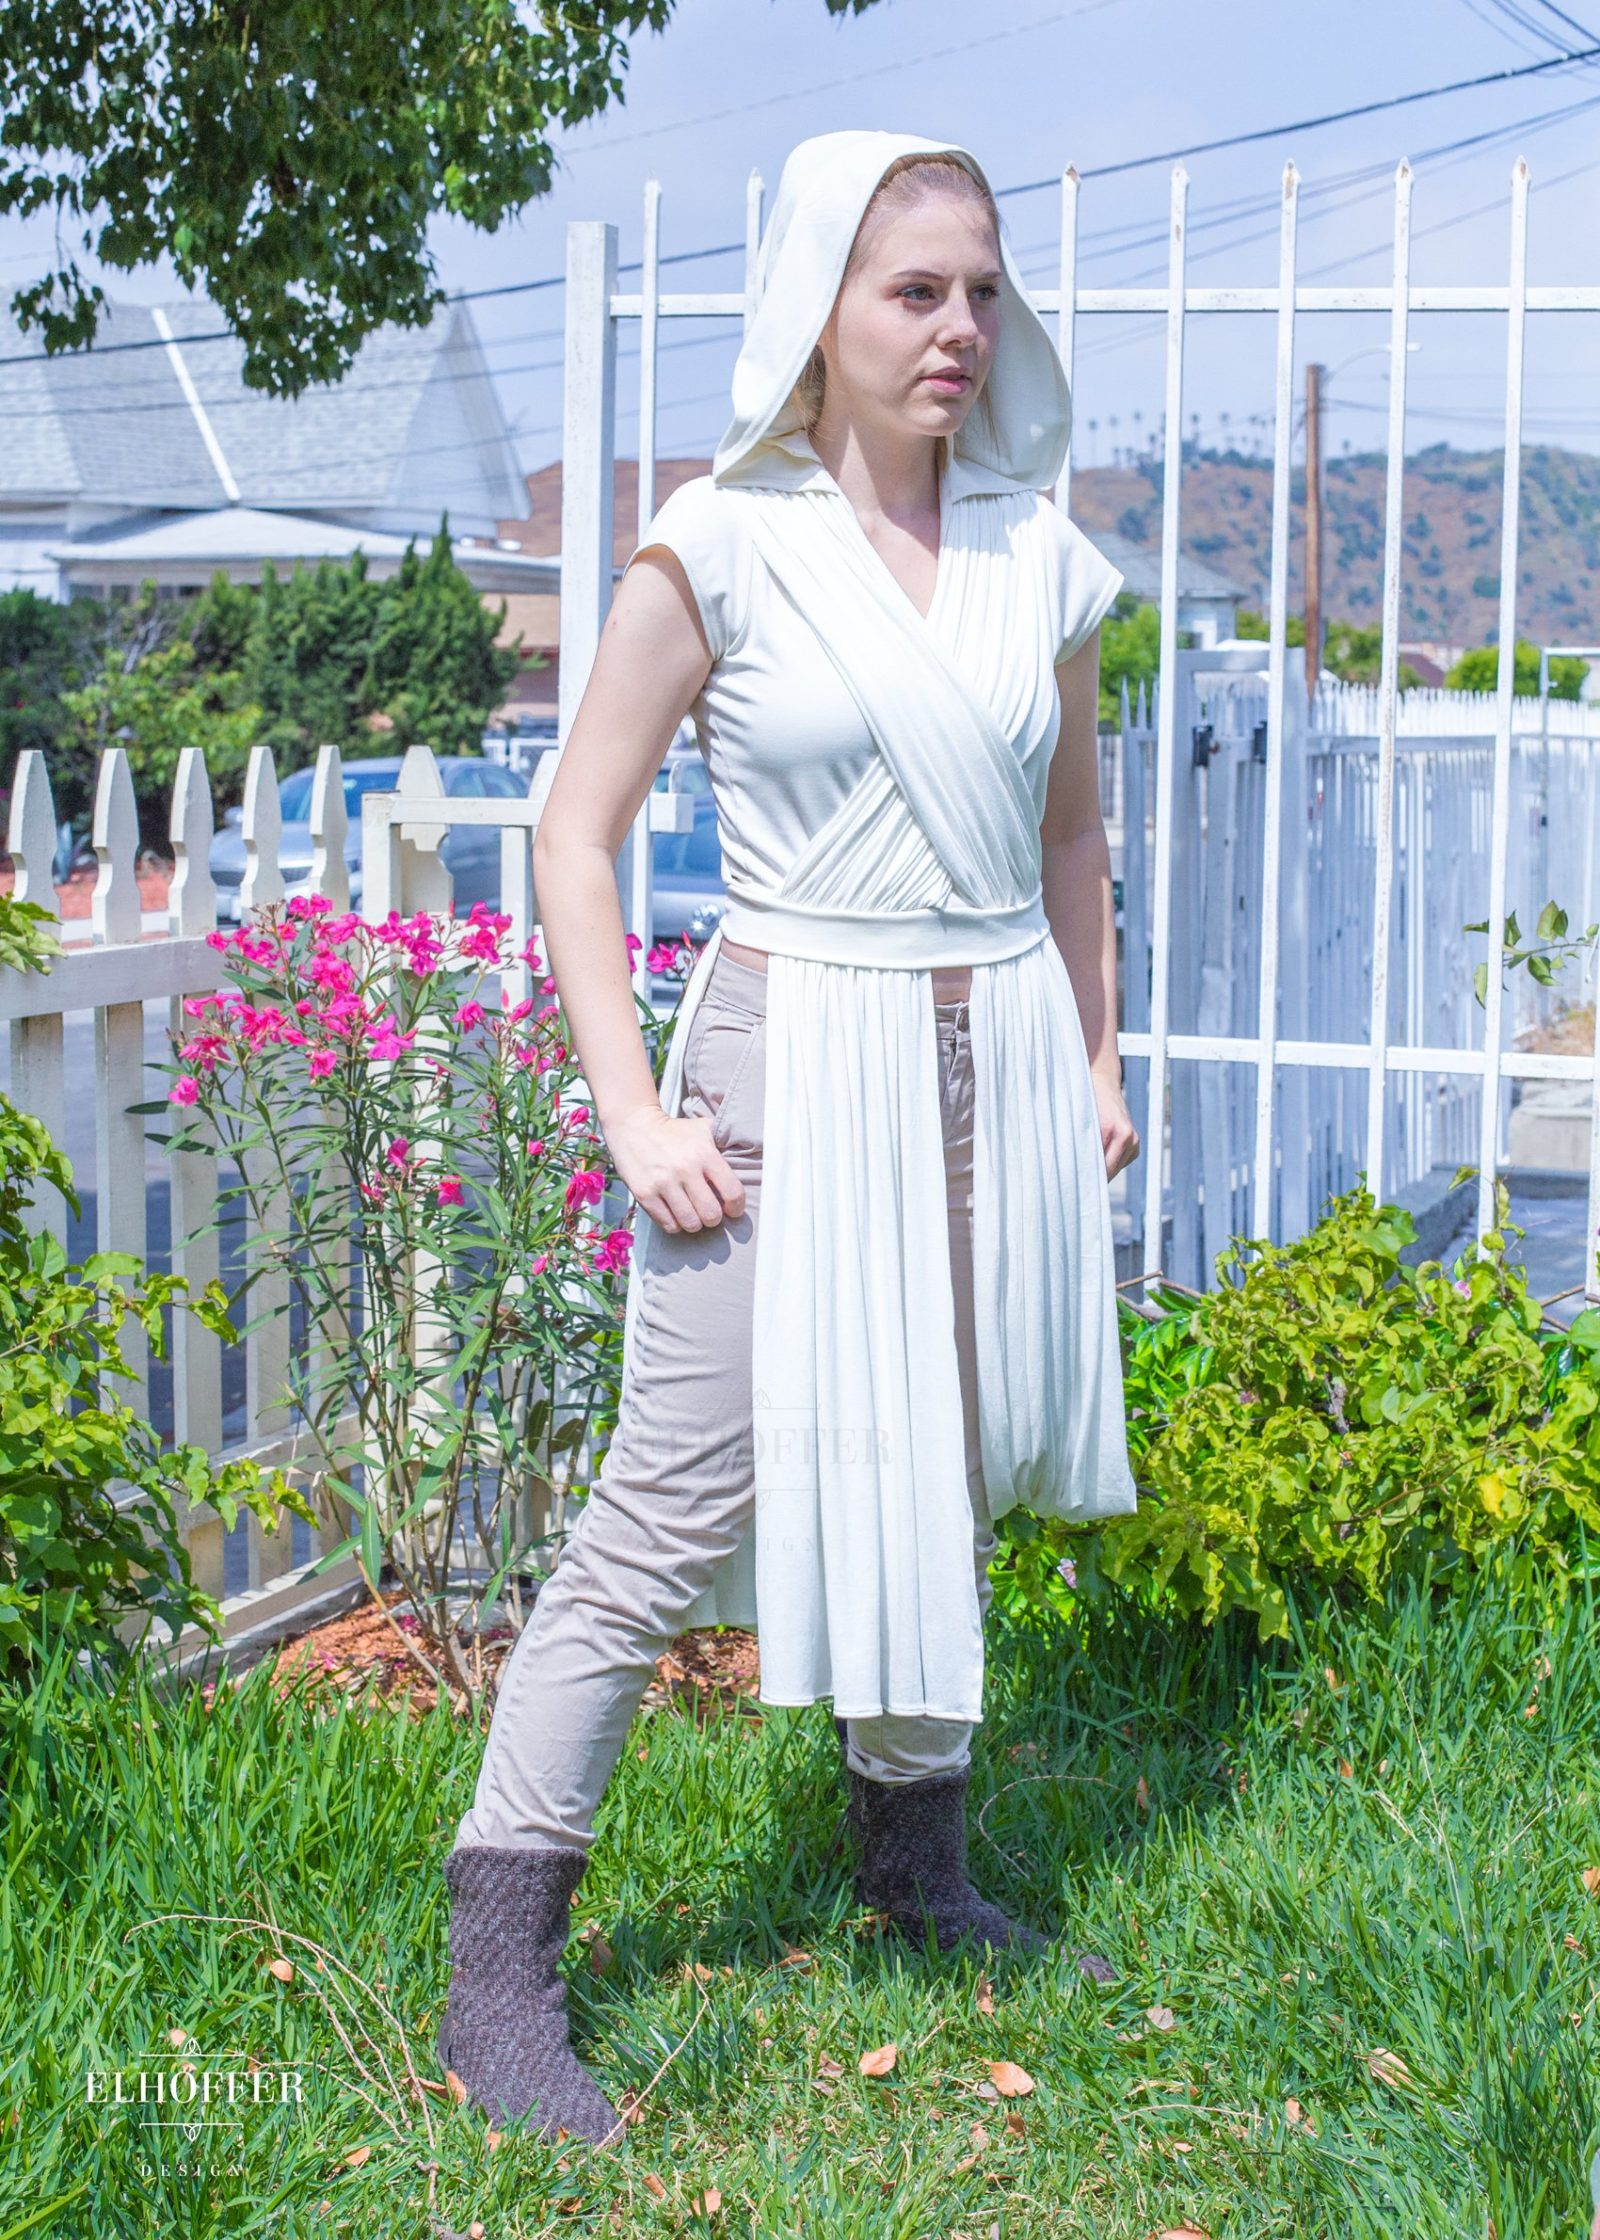 Elhoffer Design - Star Wars Rey Inspired Galactic Scavenger Hooded Top